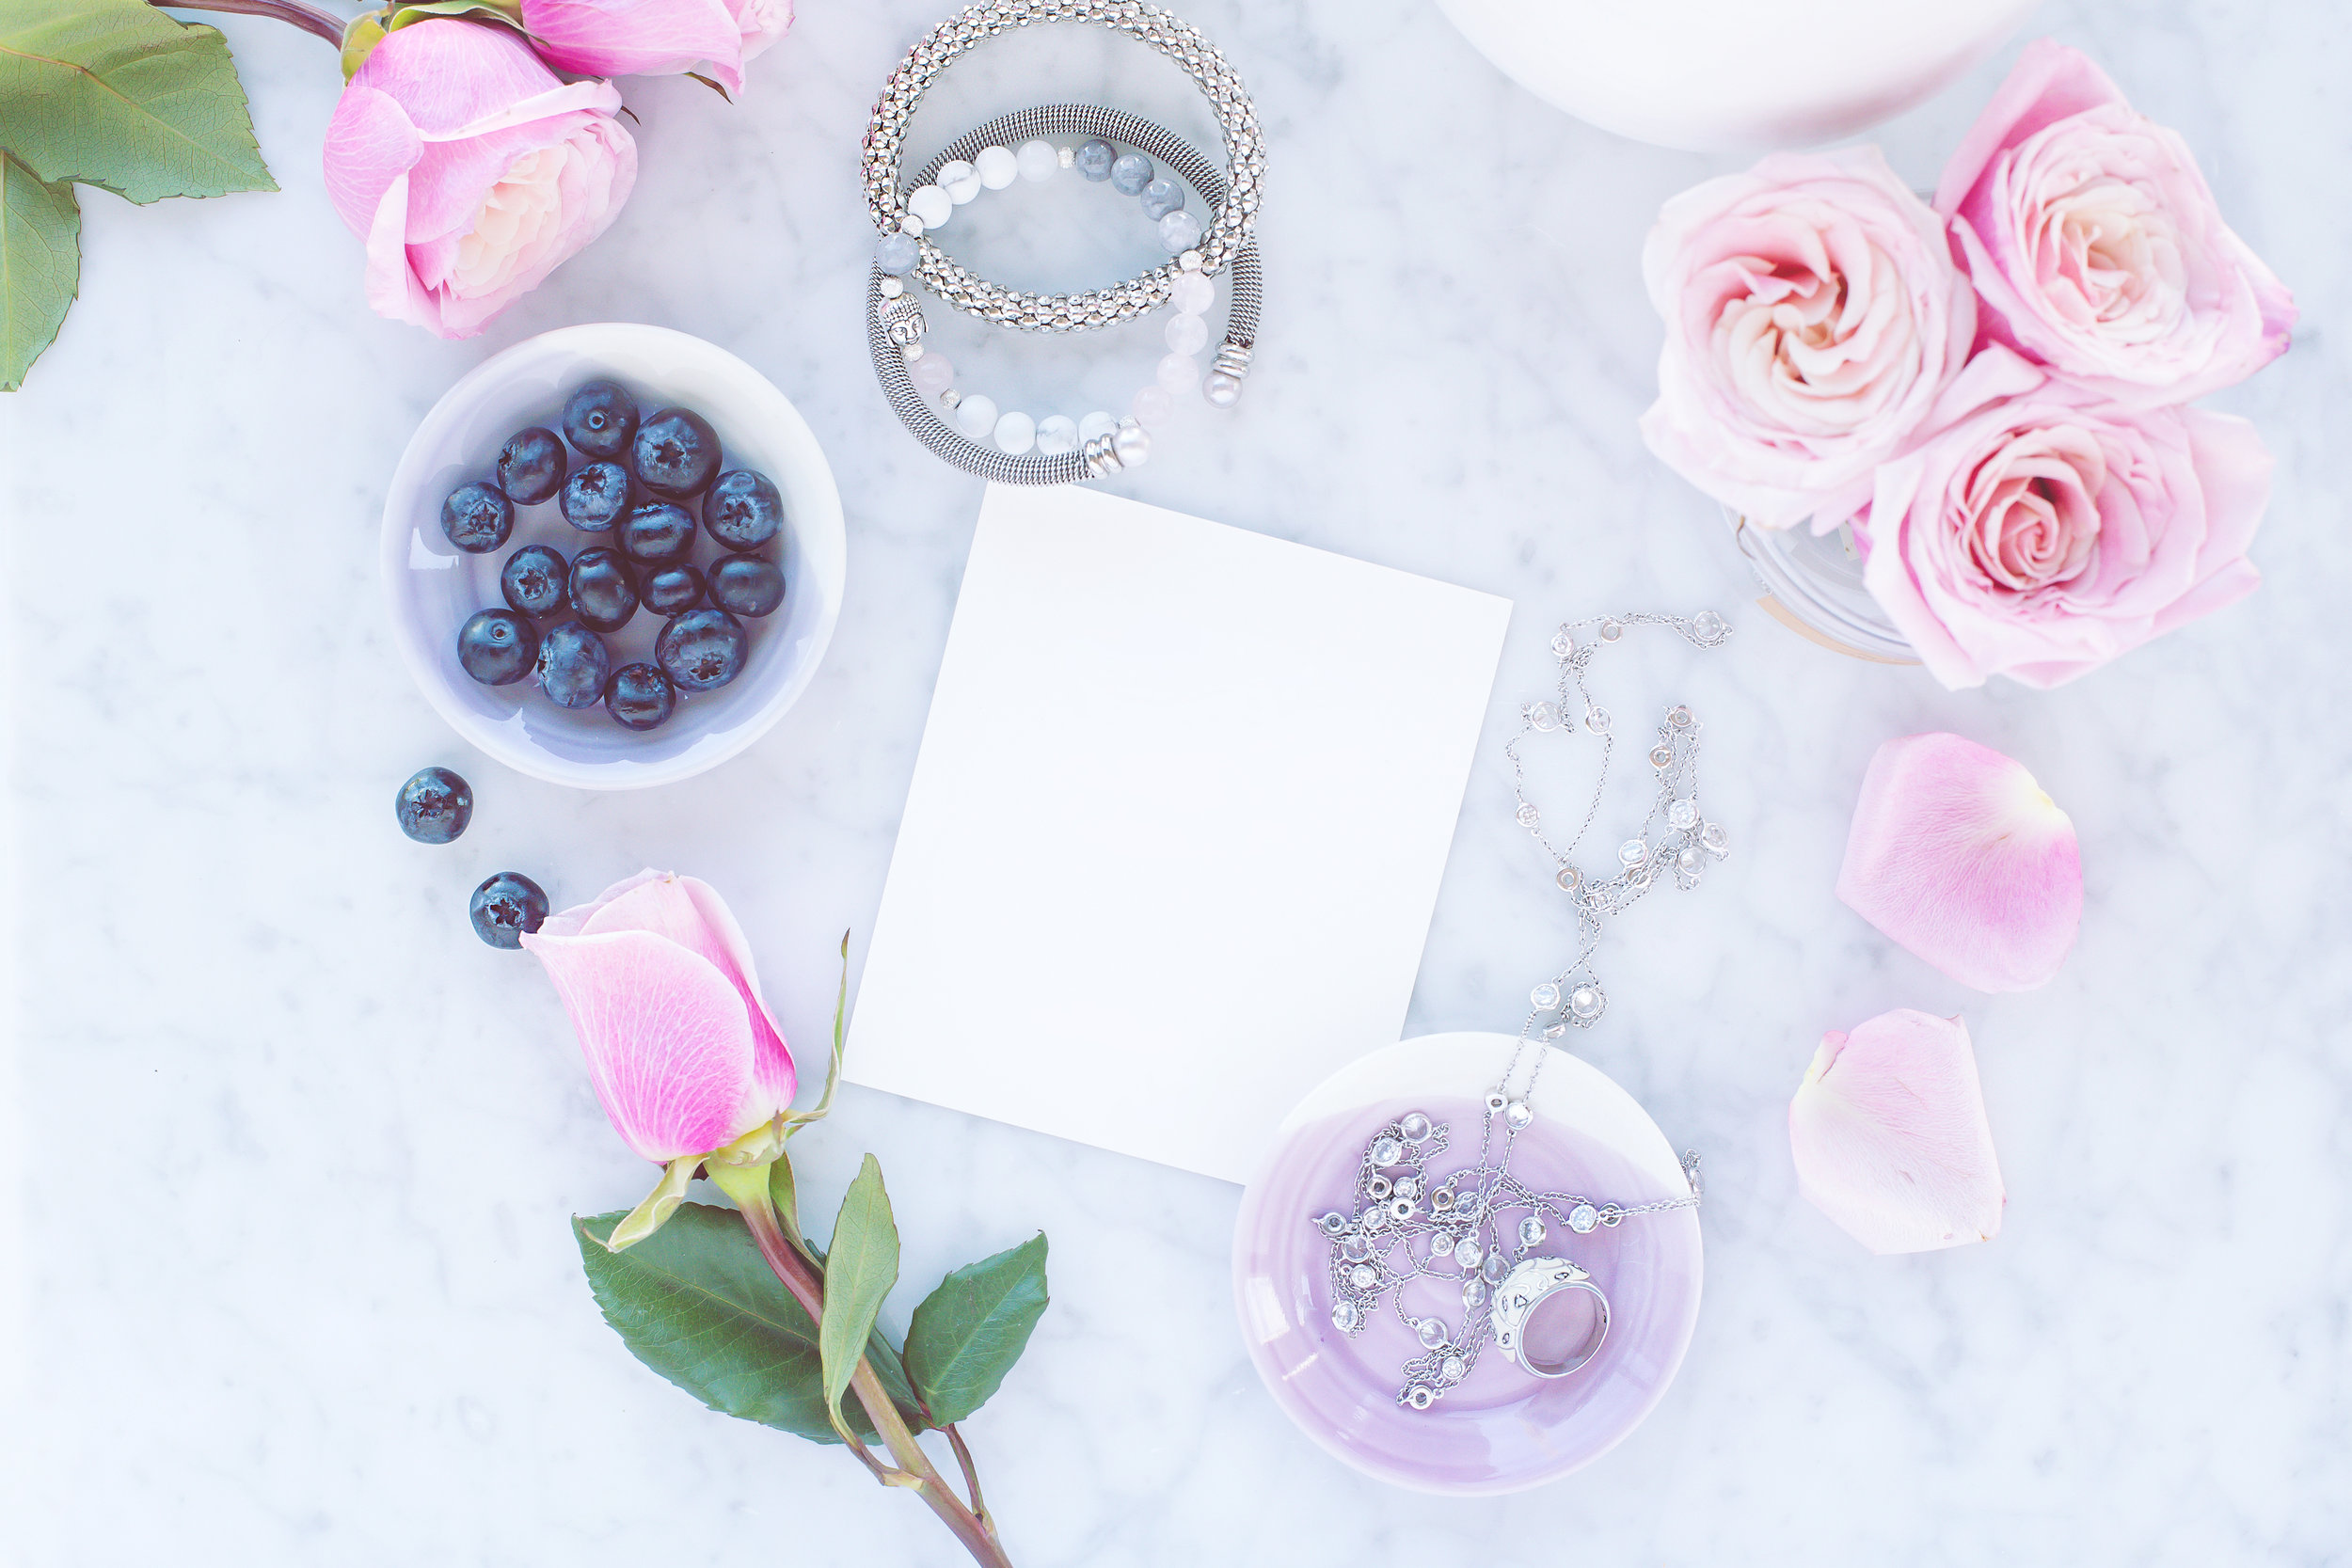 How to Maintain a Boss Babe Mindset When Things Get Tough | Be in love with yourself and your life